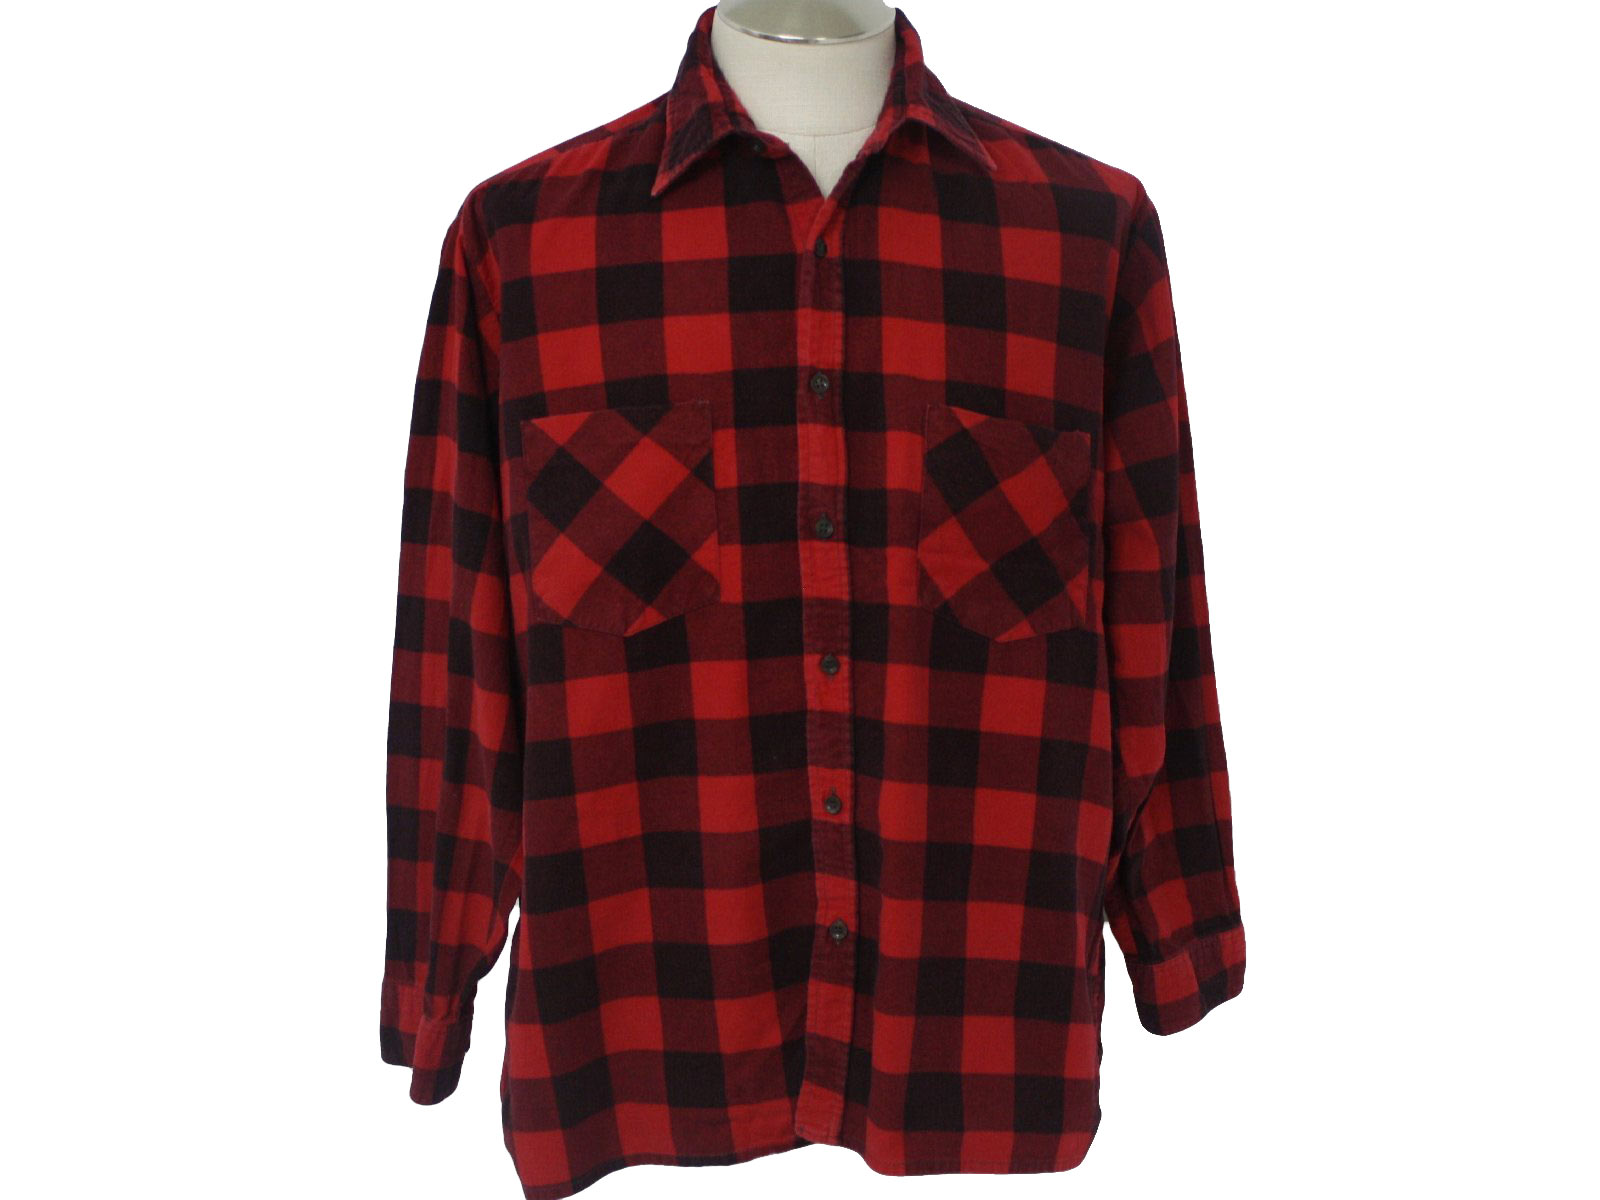 Shop for mens shirt red flannel online at Target. Free shipping on purchases over $35 and save 5% every day with your Target REDcard.